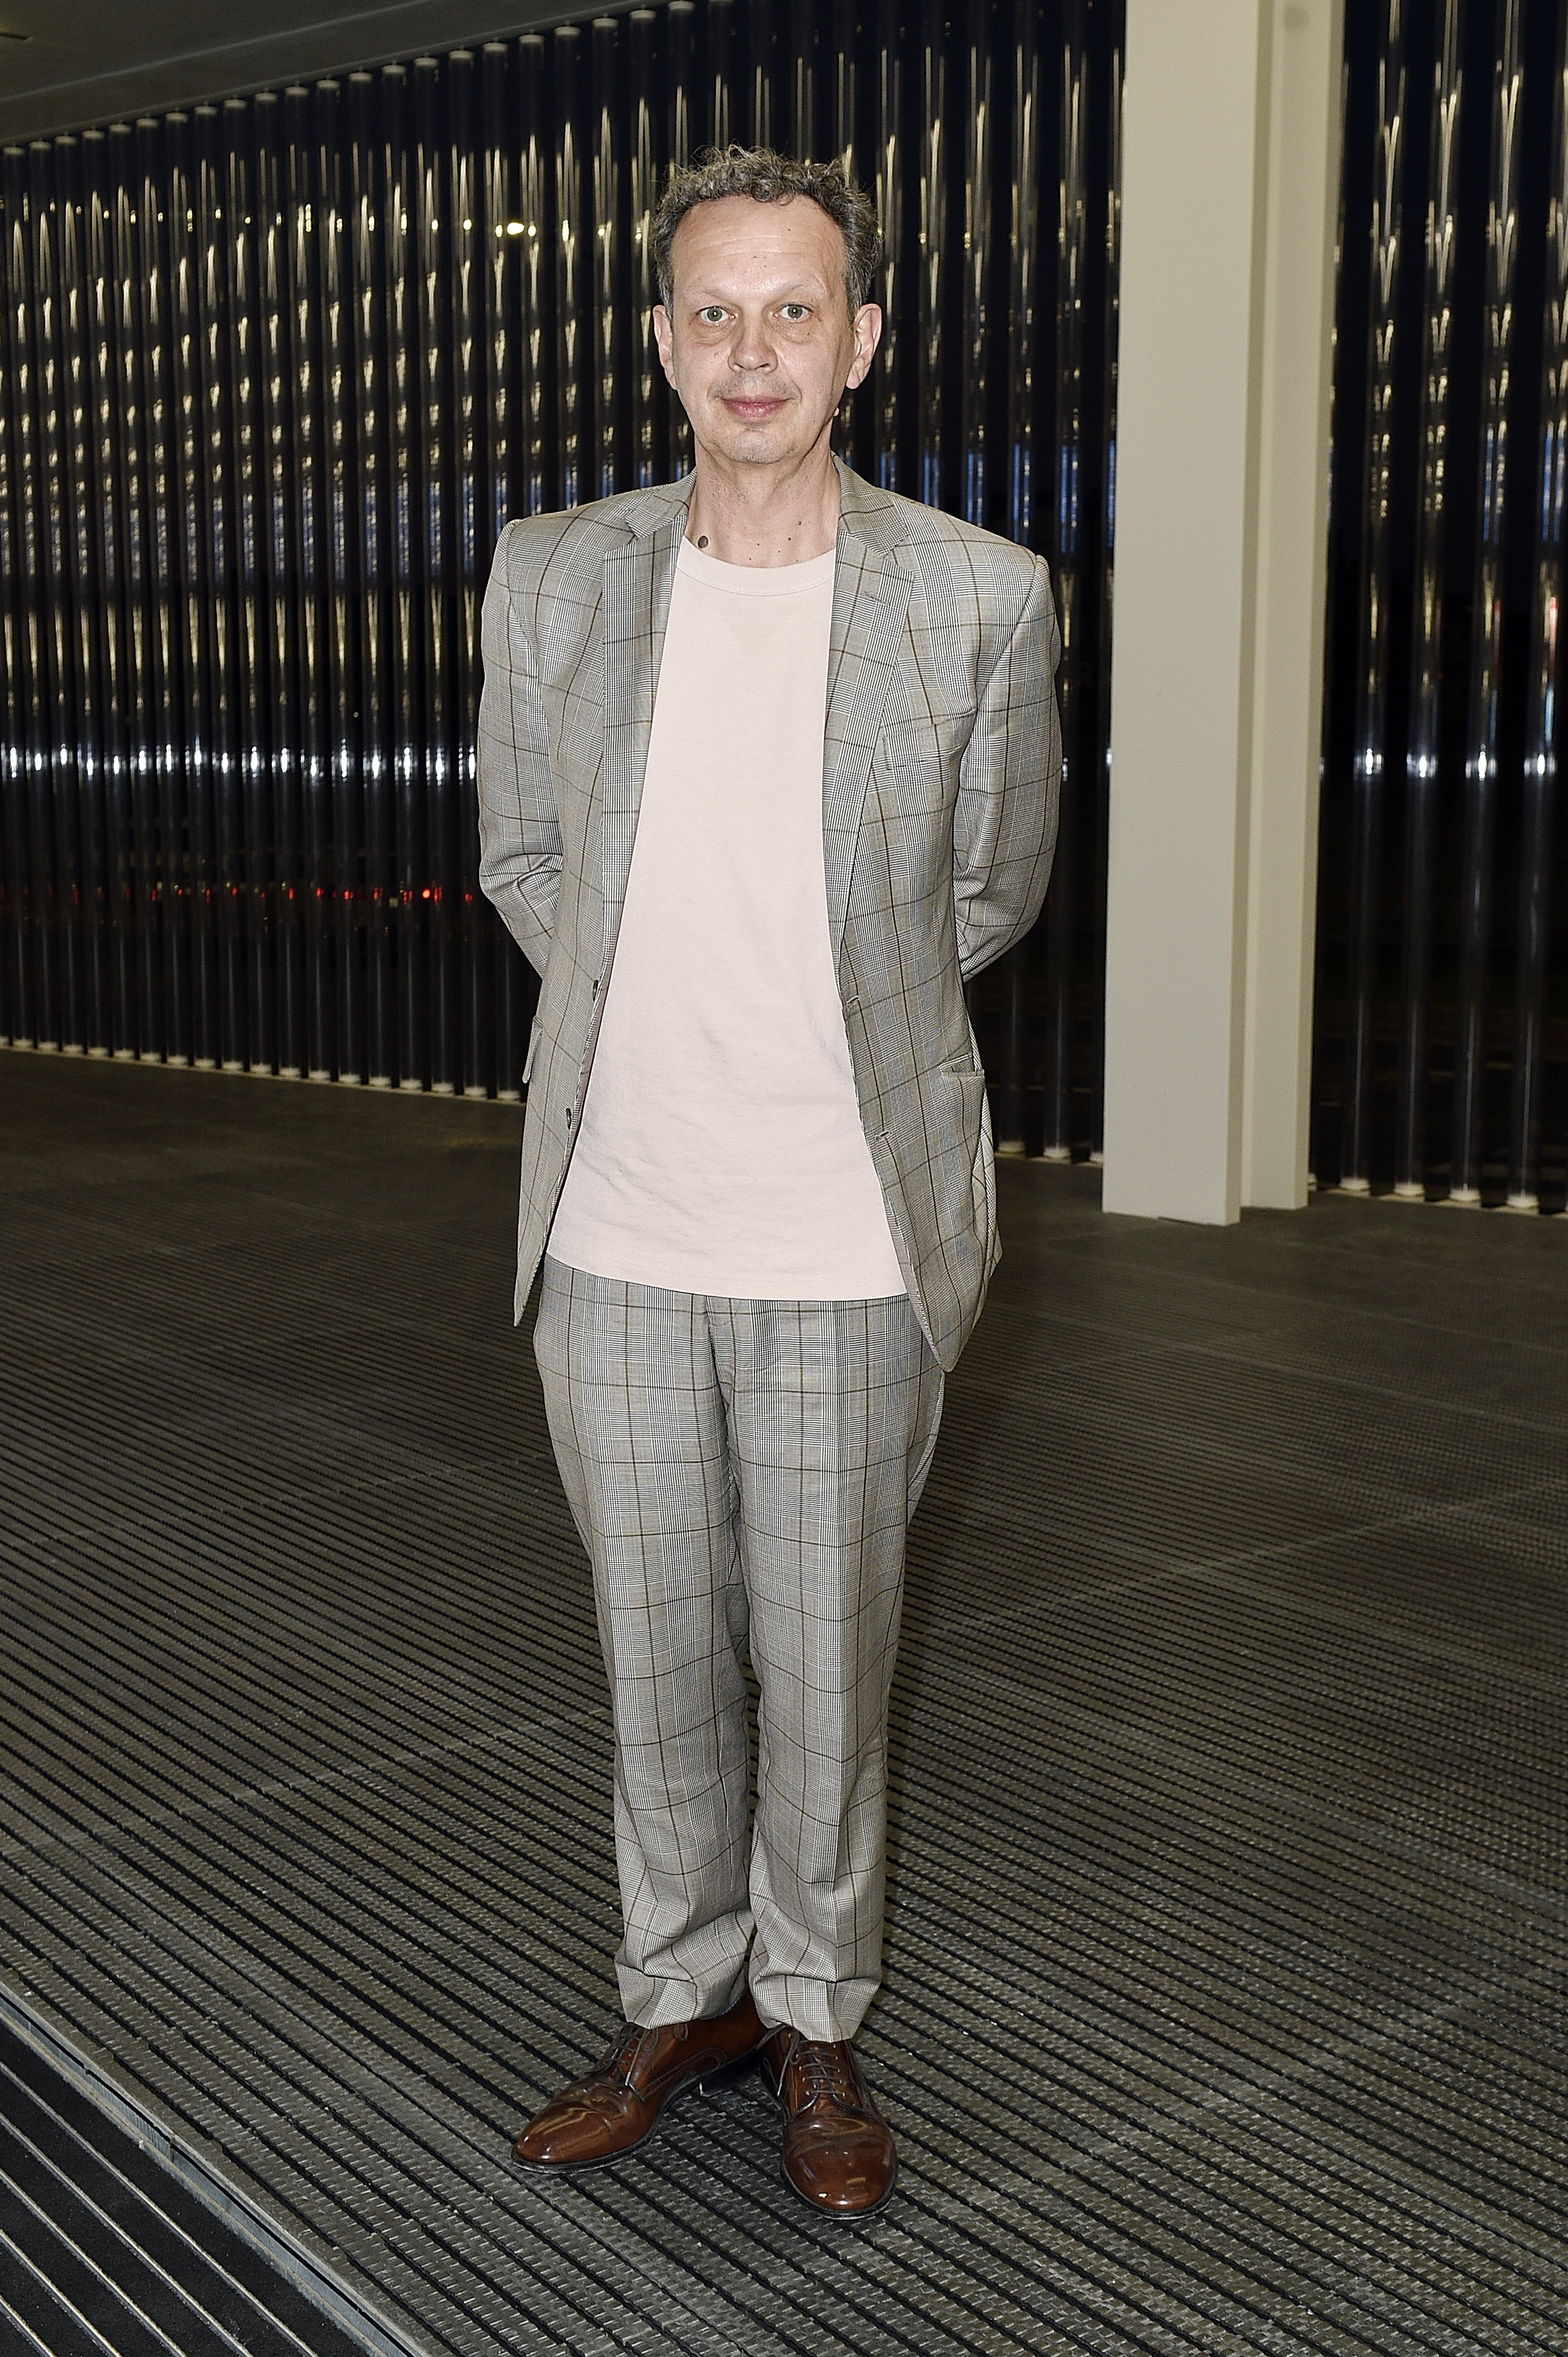 Tom Dixon à l'inauguration de la Torre à la Fondazione Prada le 18 avril 2018 à Milan, Italie. (Photo by Pietro D'Aprano/Getty Images for Fondazione Prada)